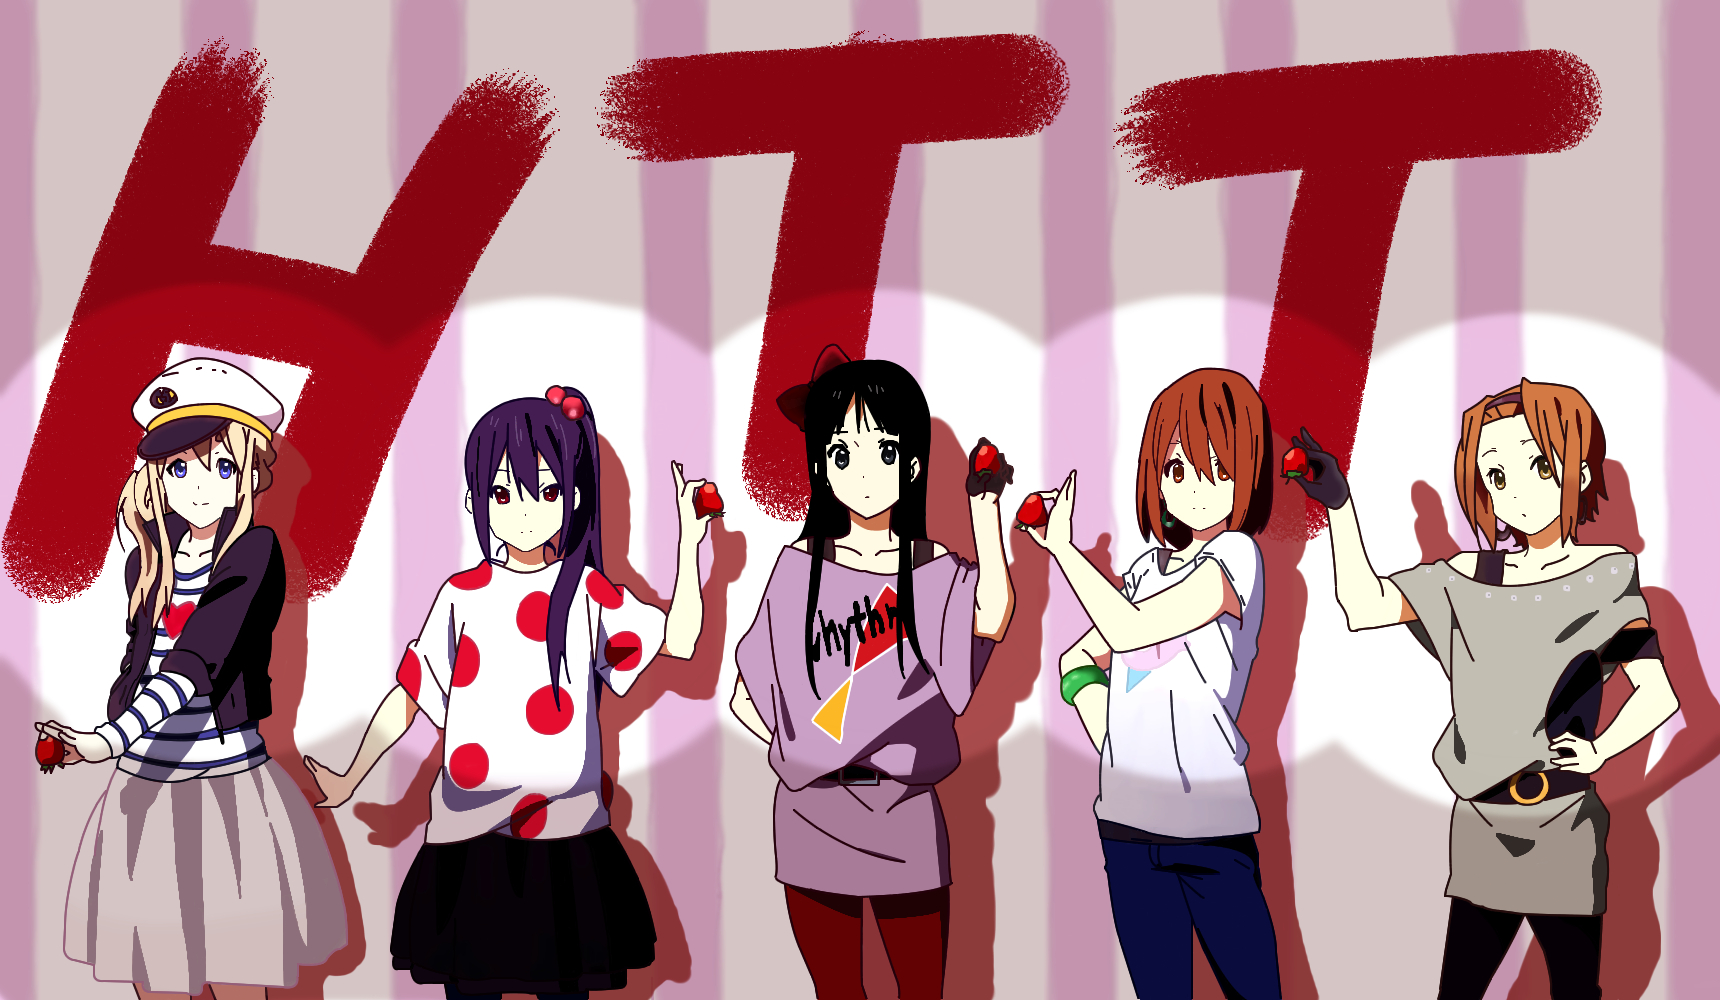 K-On! picture 8638_k-on